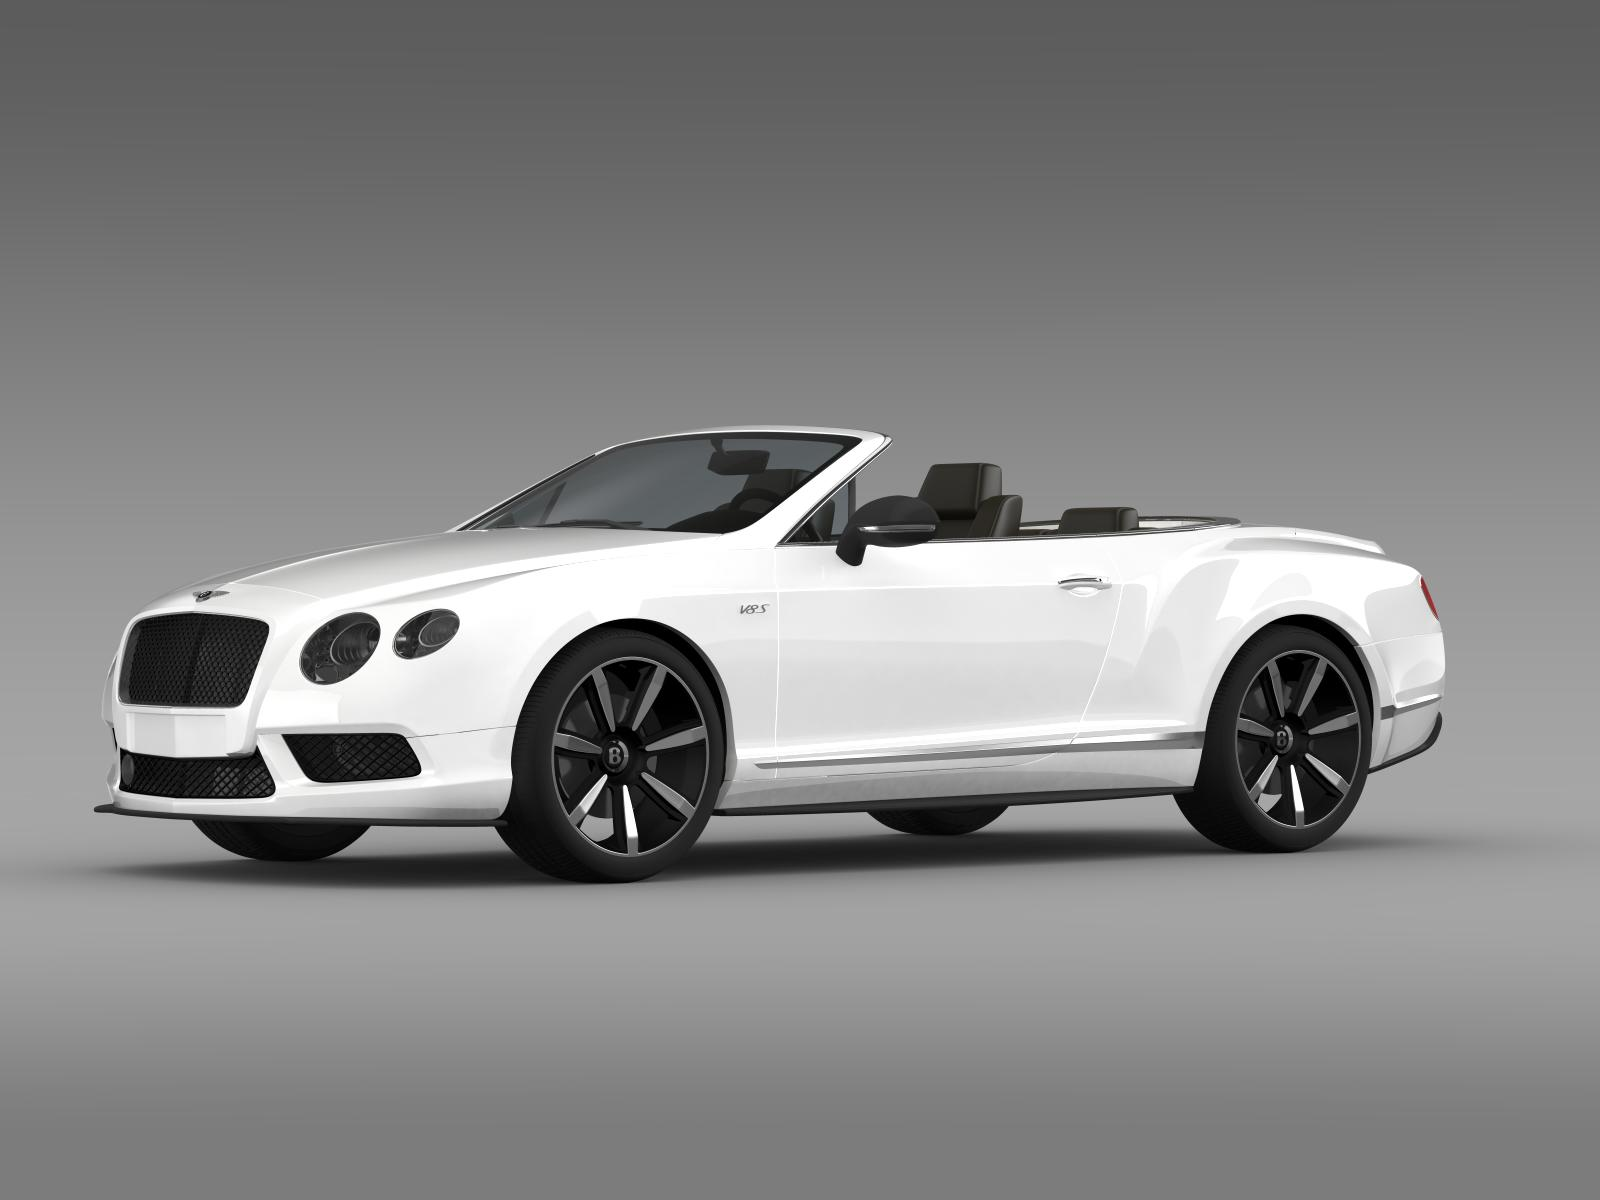 bentley continental gt v8 s convertible 2014 3d model. Black Bedroom Furniture Sets. Home Design Ideas